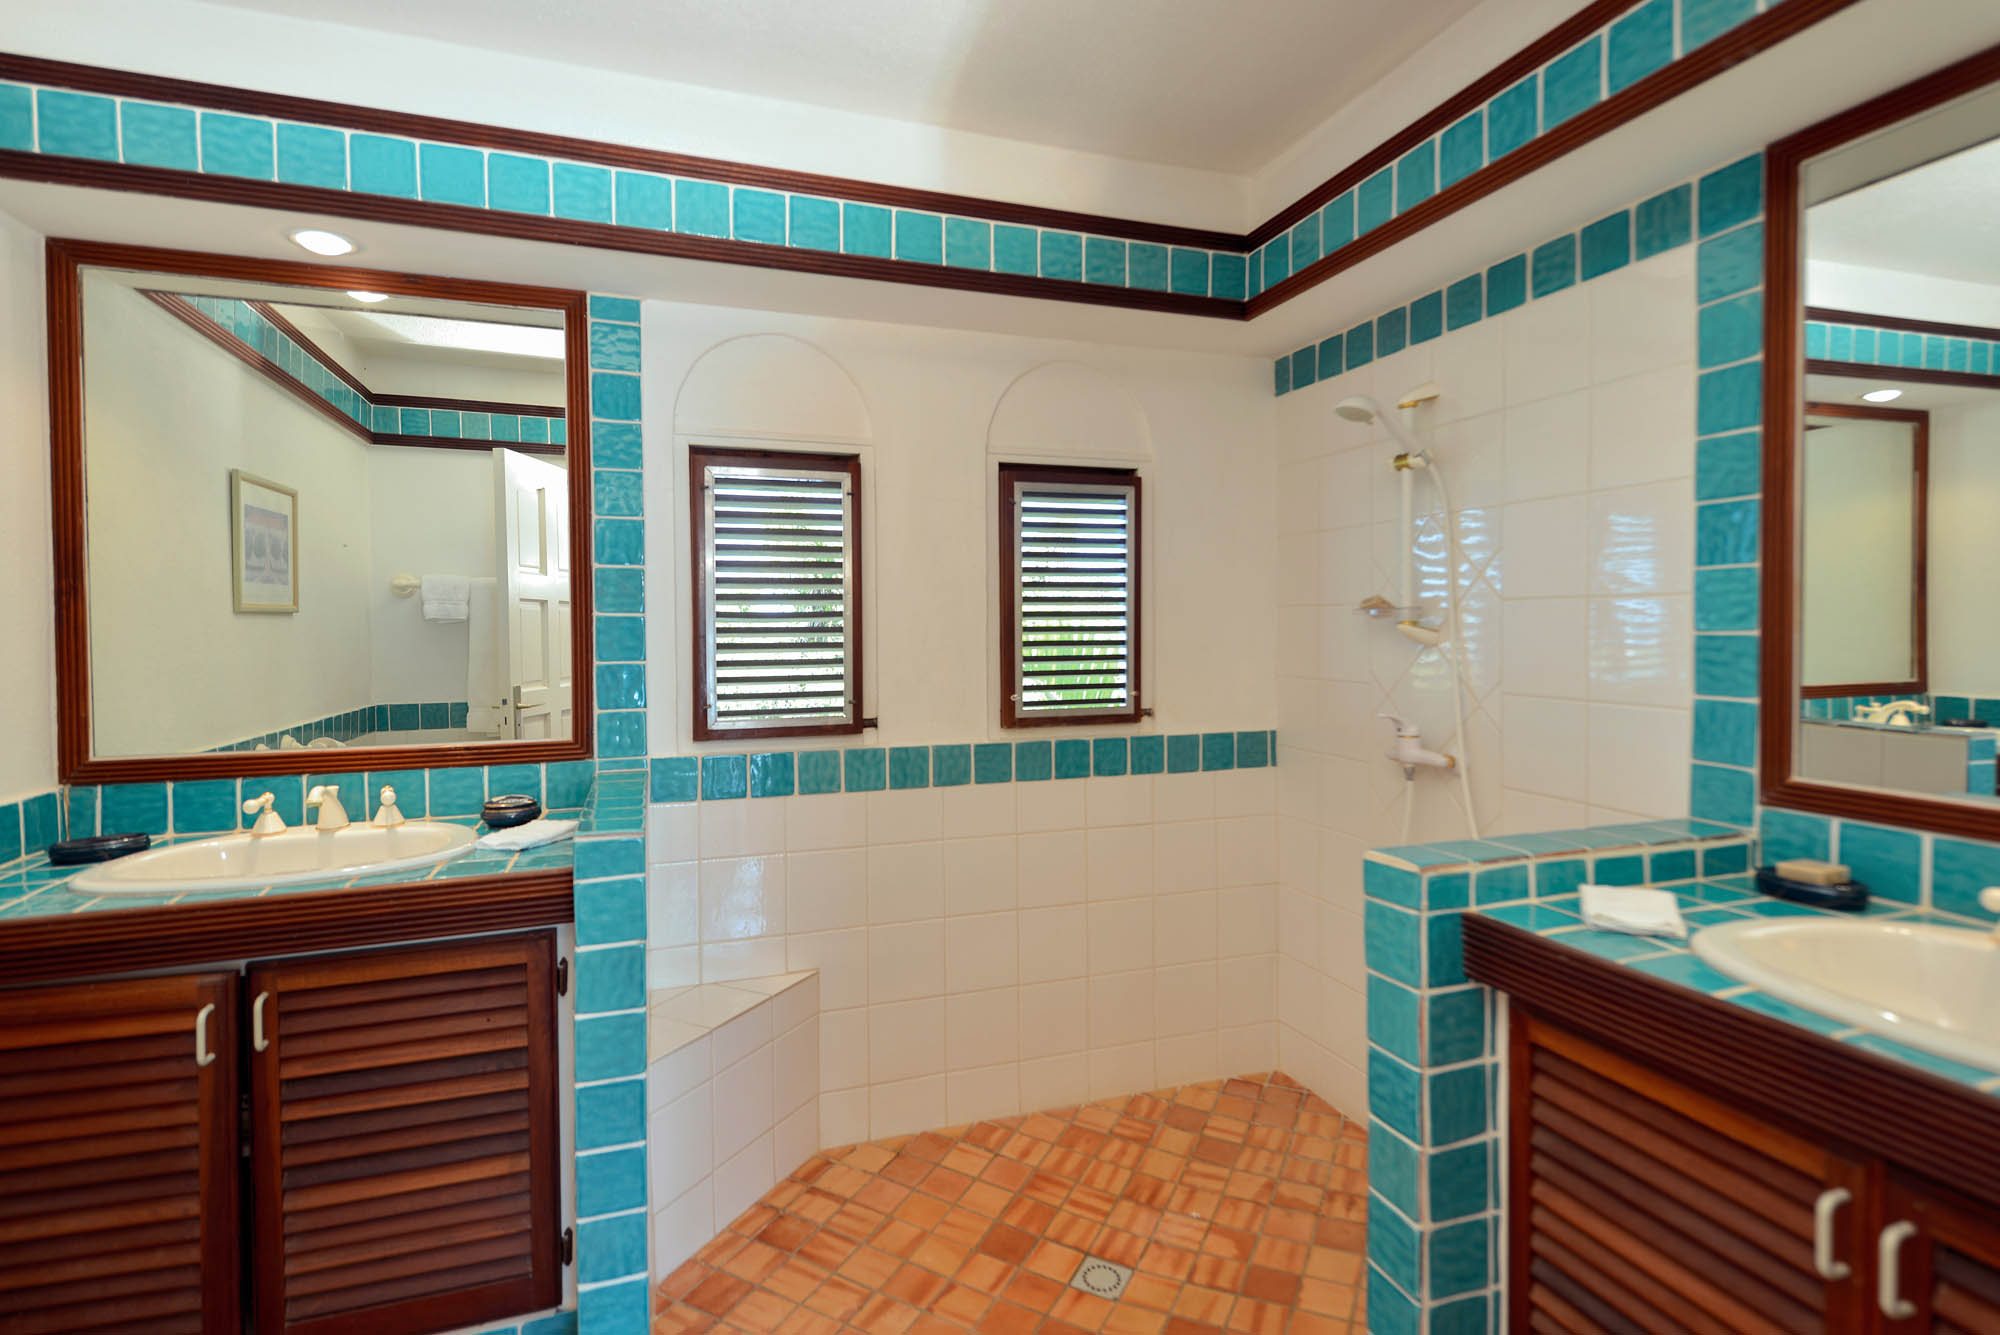 This St. Martin holiday villa rental provides gorgeous bathrooms for each master bedroom.